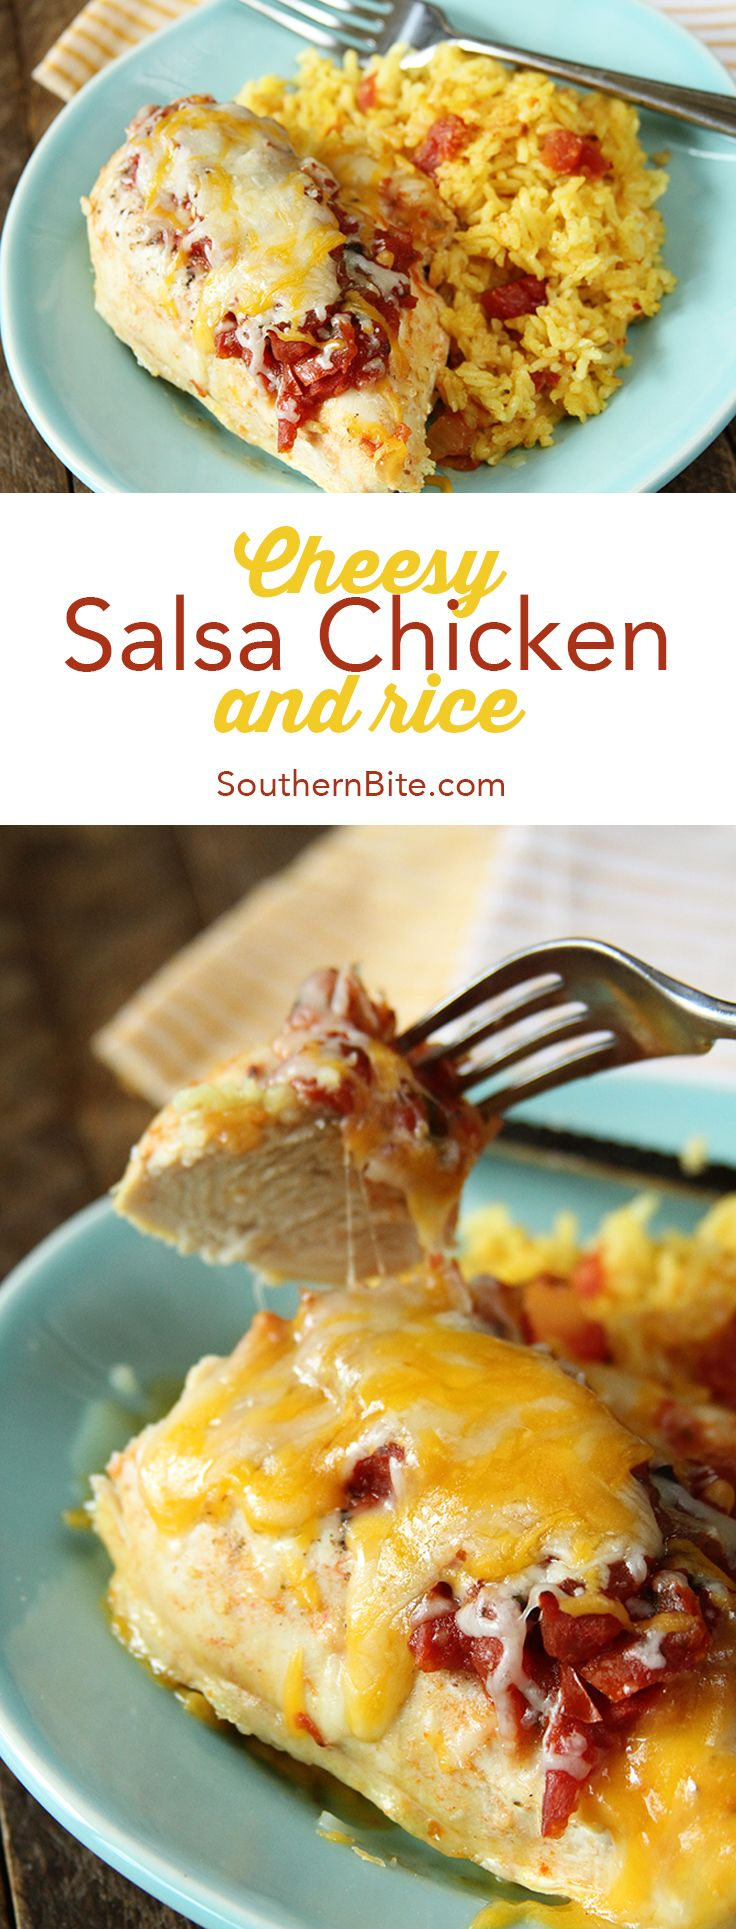 This Cheesy Salsa Chicken and Rice is the perfect one-dish meal. Prep and clean-up are a cinch and the flavors are amazing!